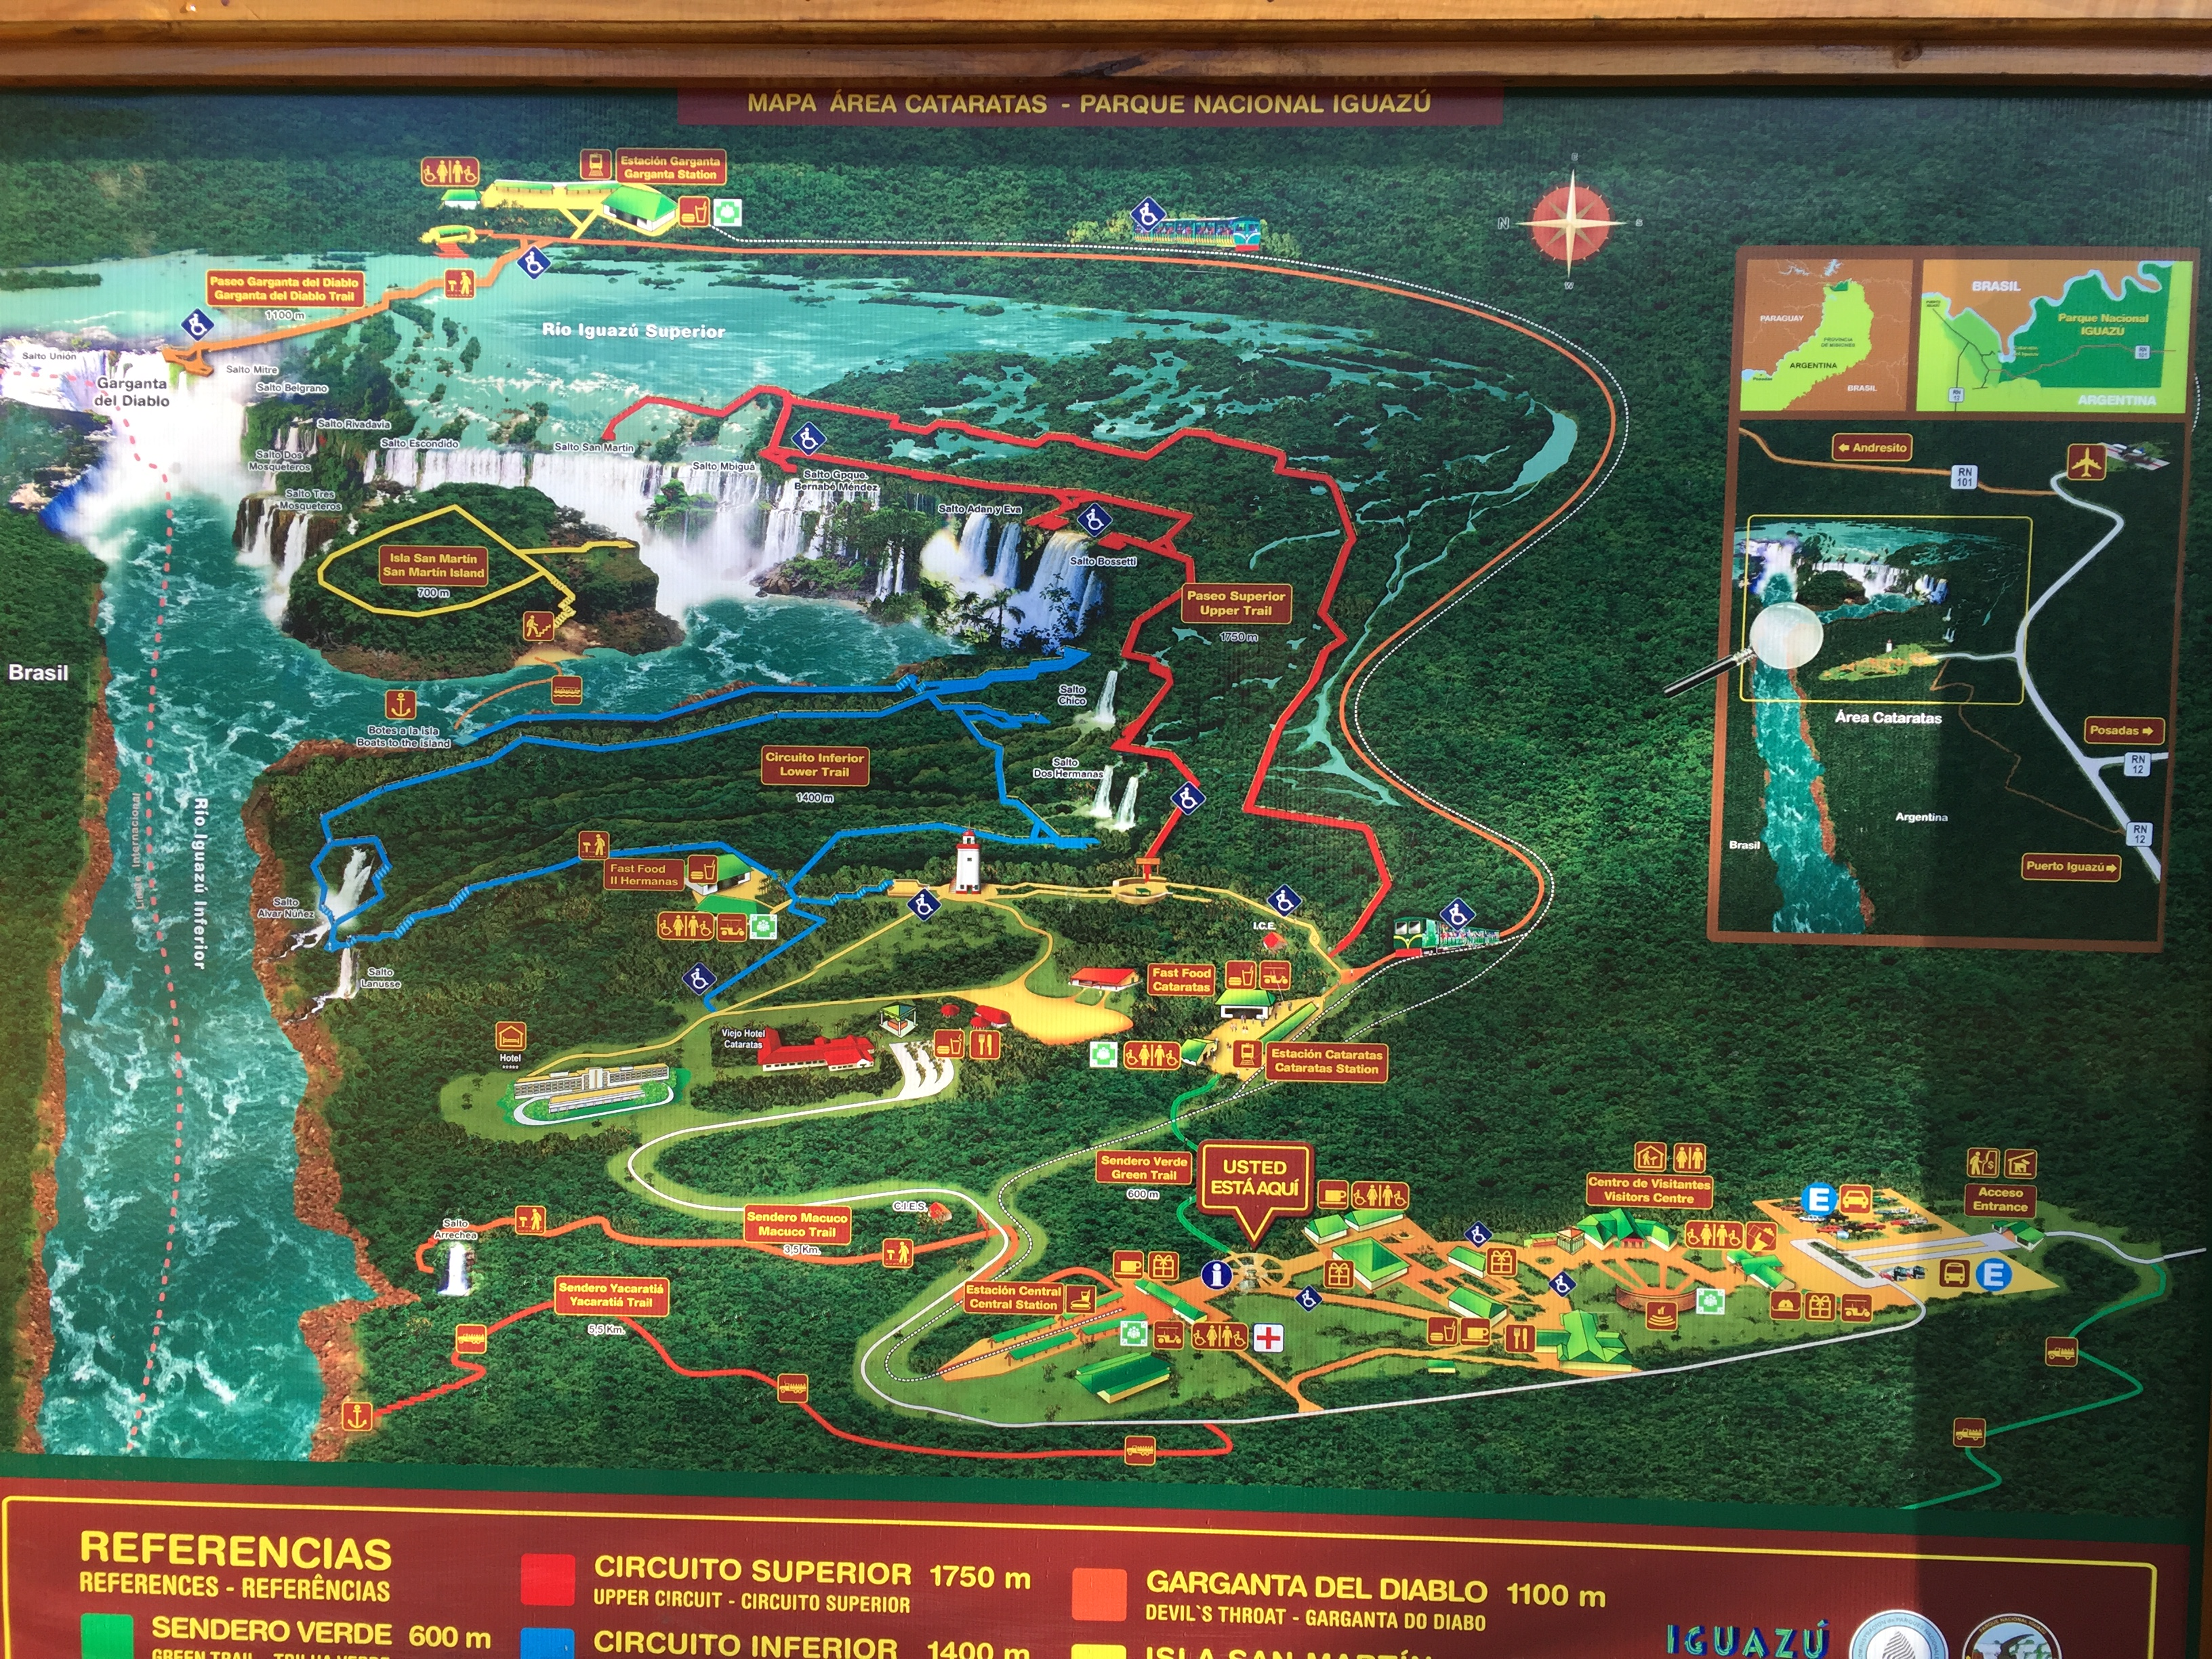 On-site map of Iguazu Falls...have a plan going in!